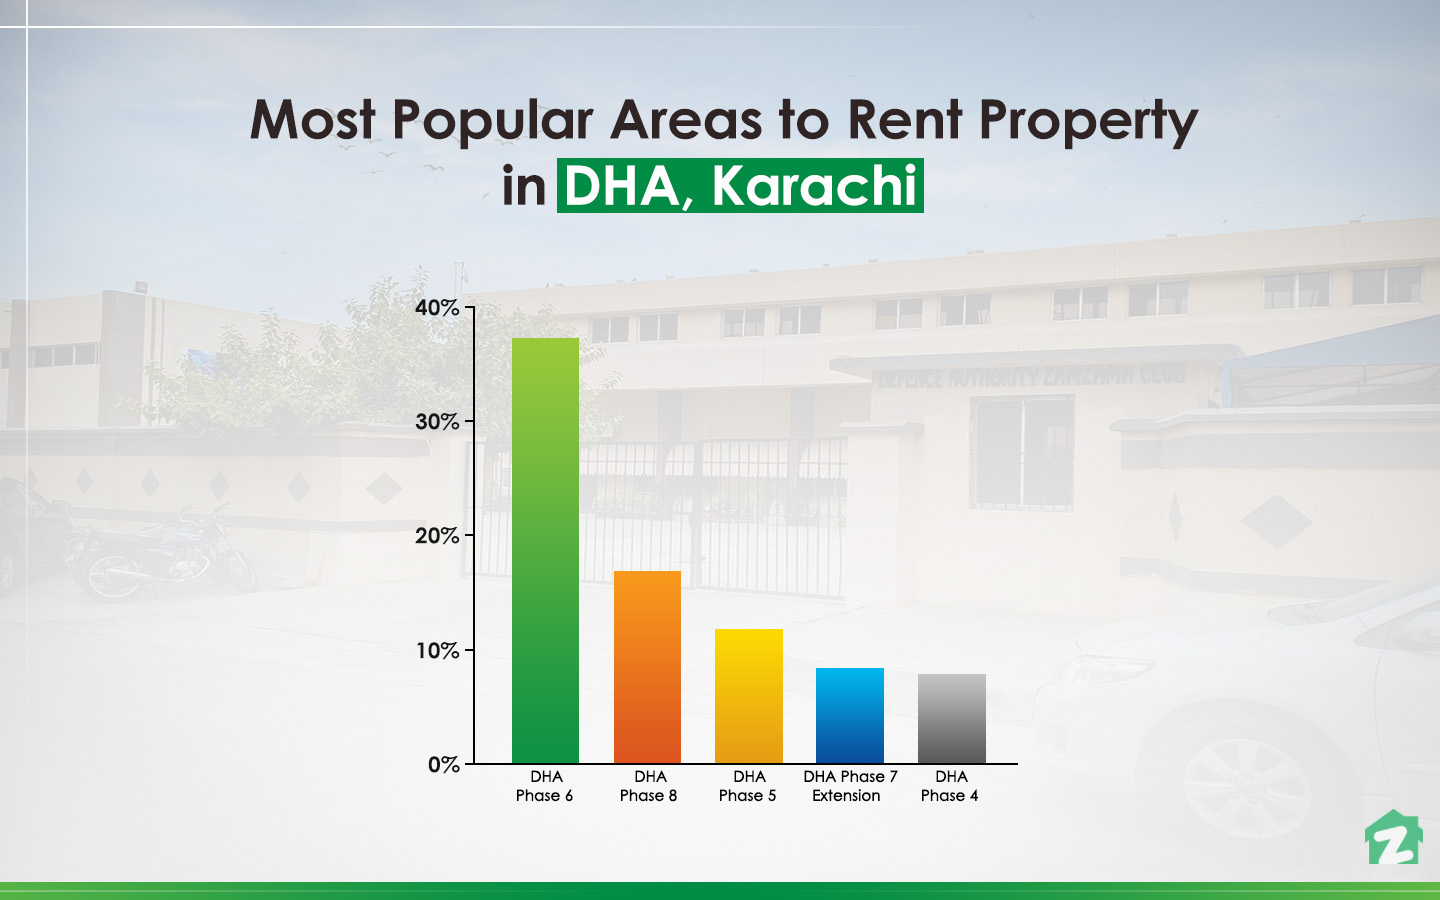 popular phases for renting property in DHA Karachi